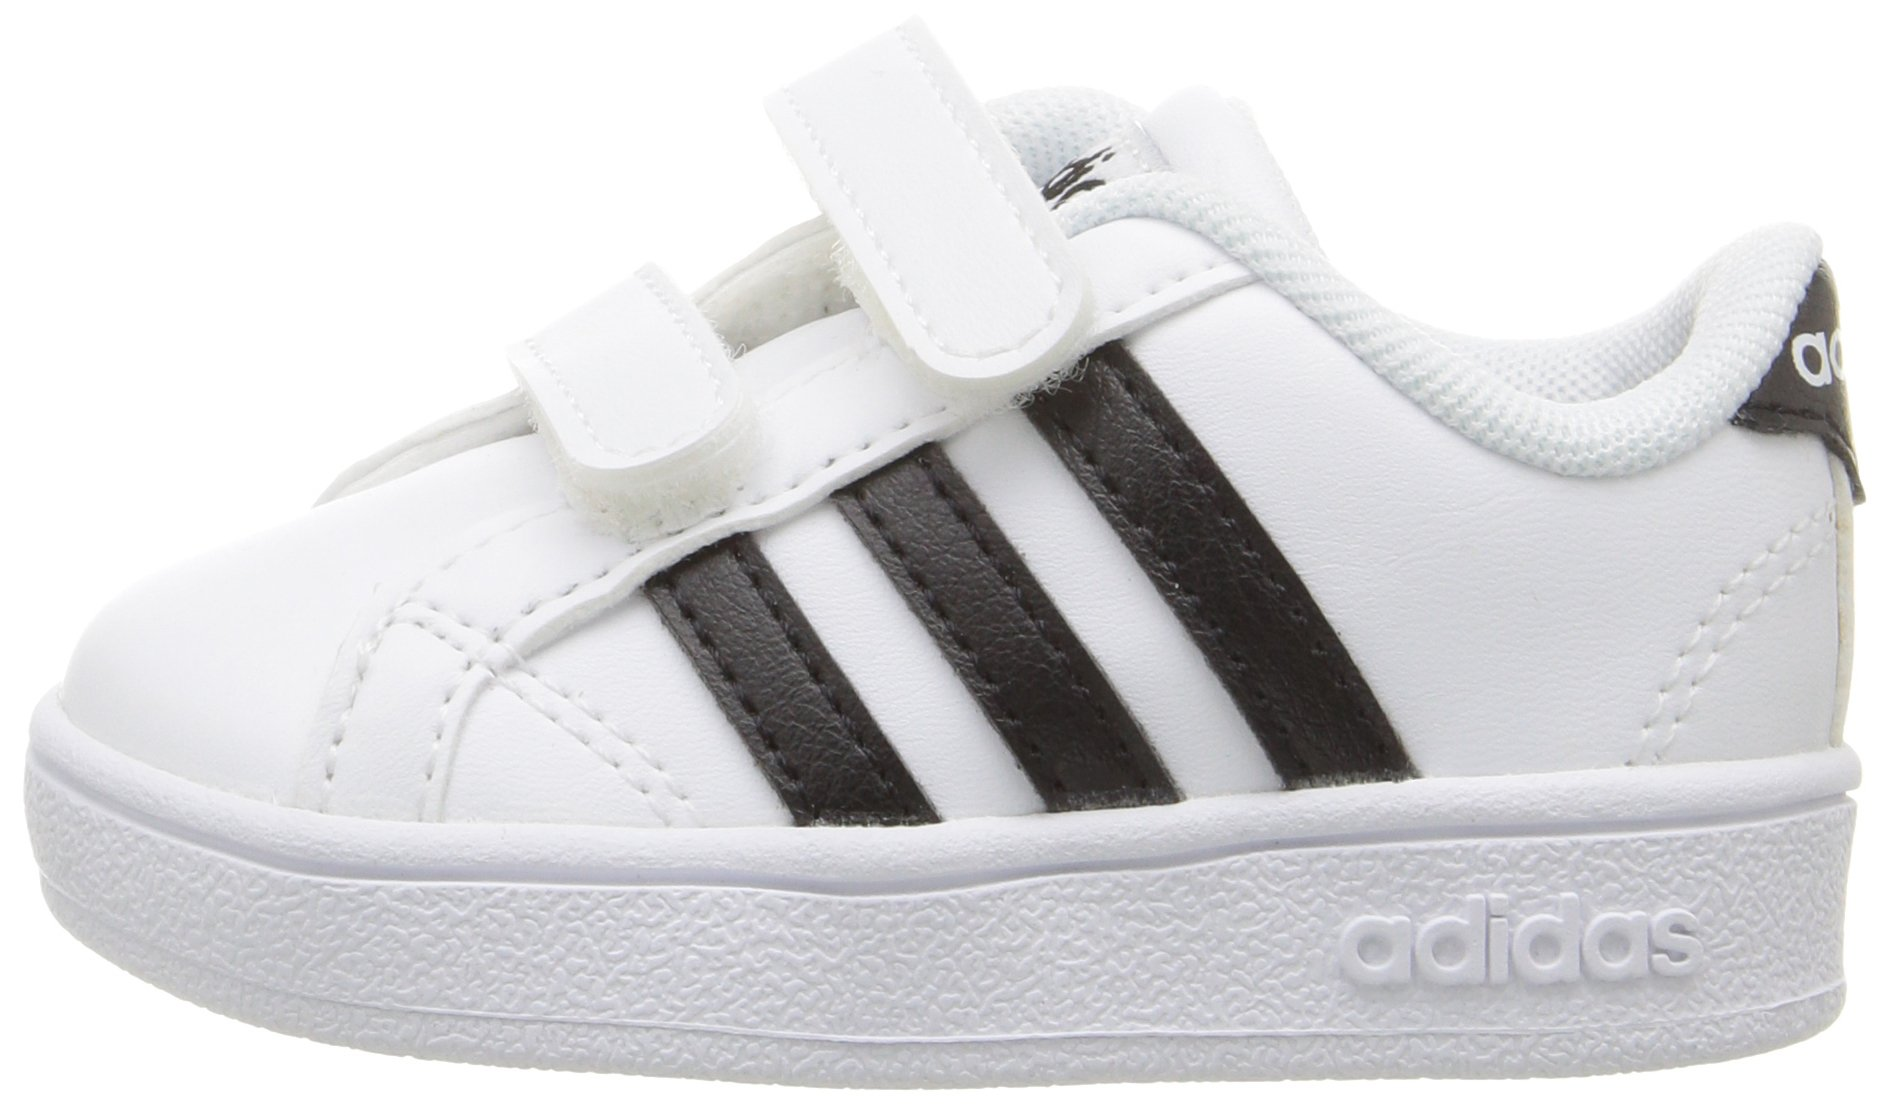 adidas Performance Baby Baseline Sneaker, White/Black/White, 6.5K M US Toddler by adidas (Image #5)